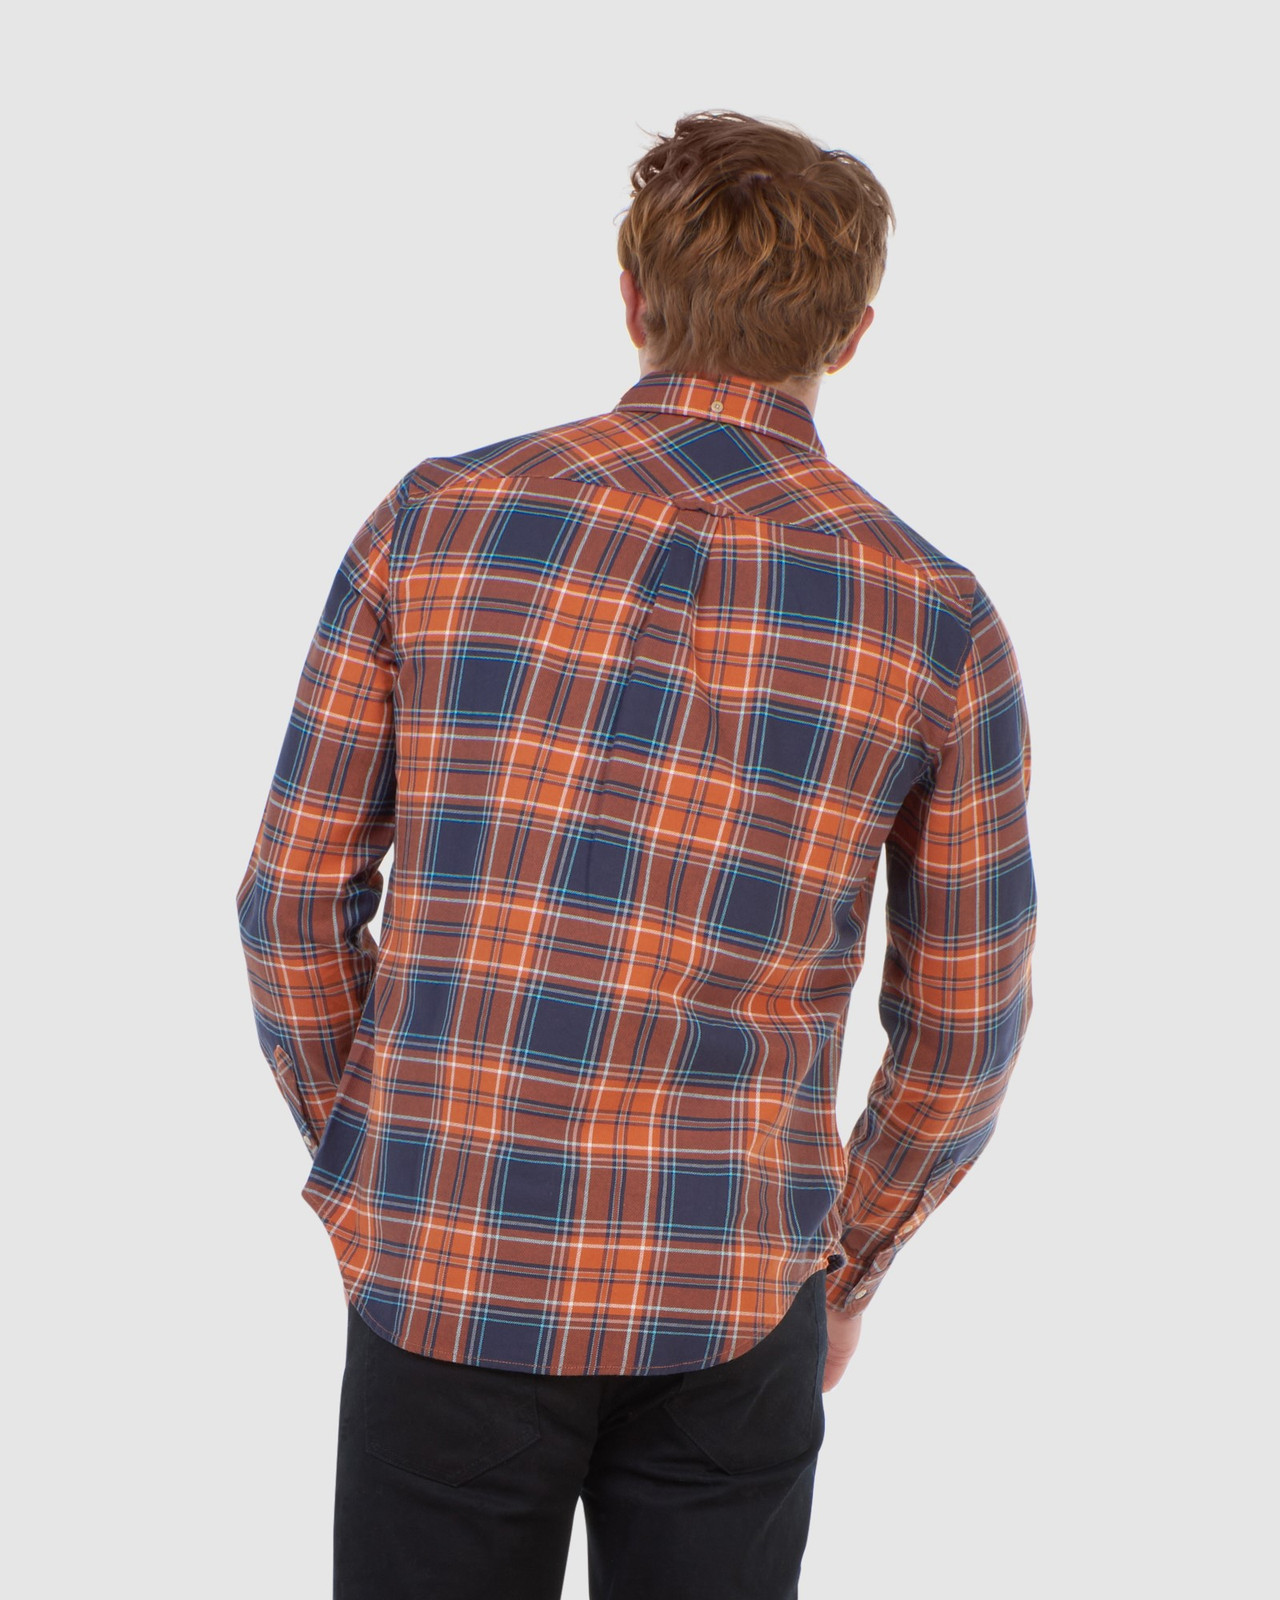 Superdry Mens WORKWEAR SHIRT Neutrals Check Shirts 3